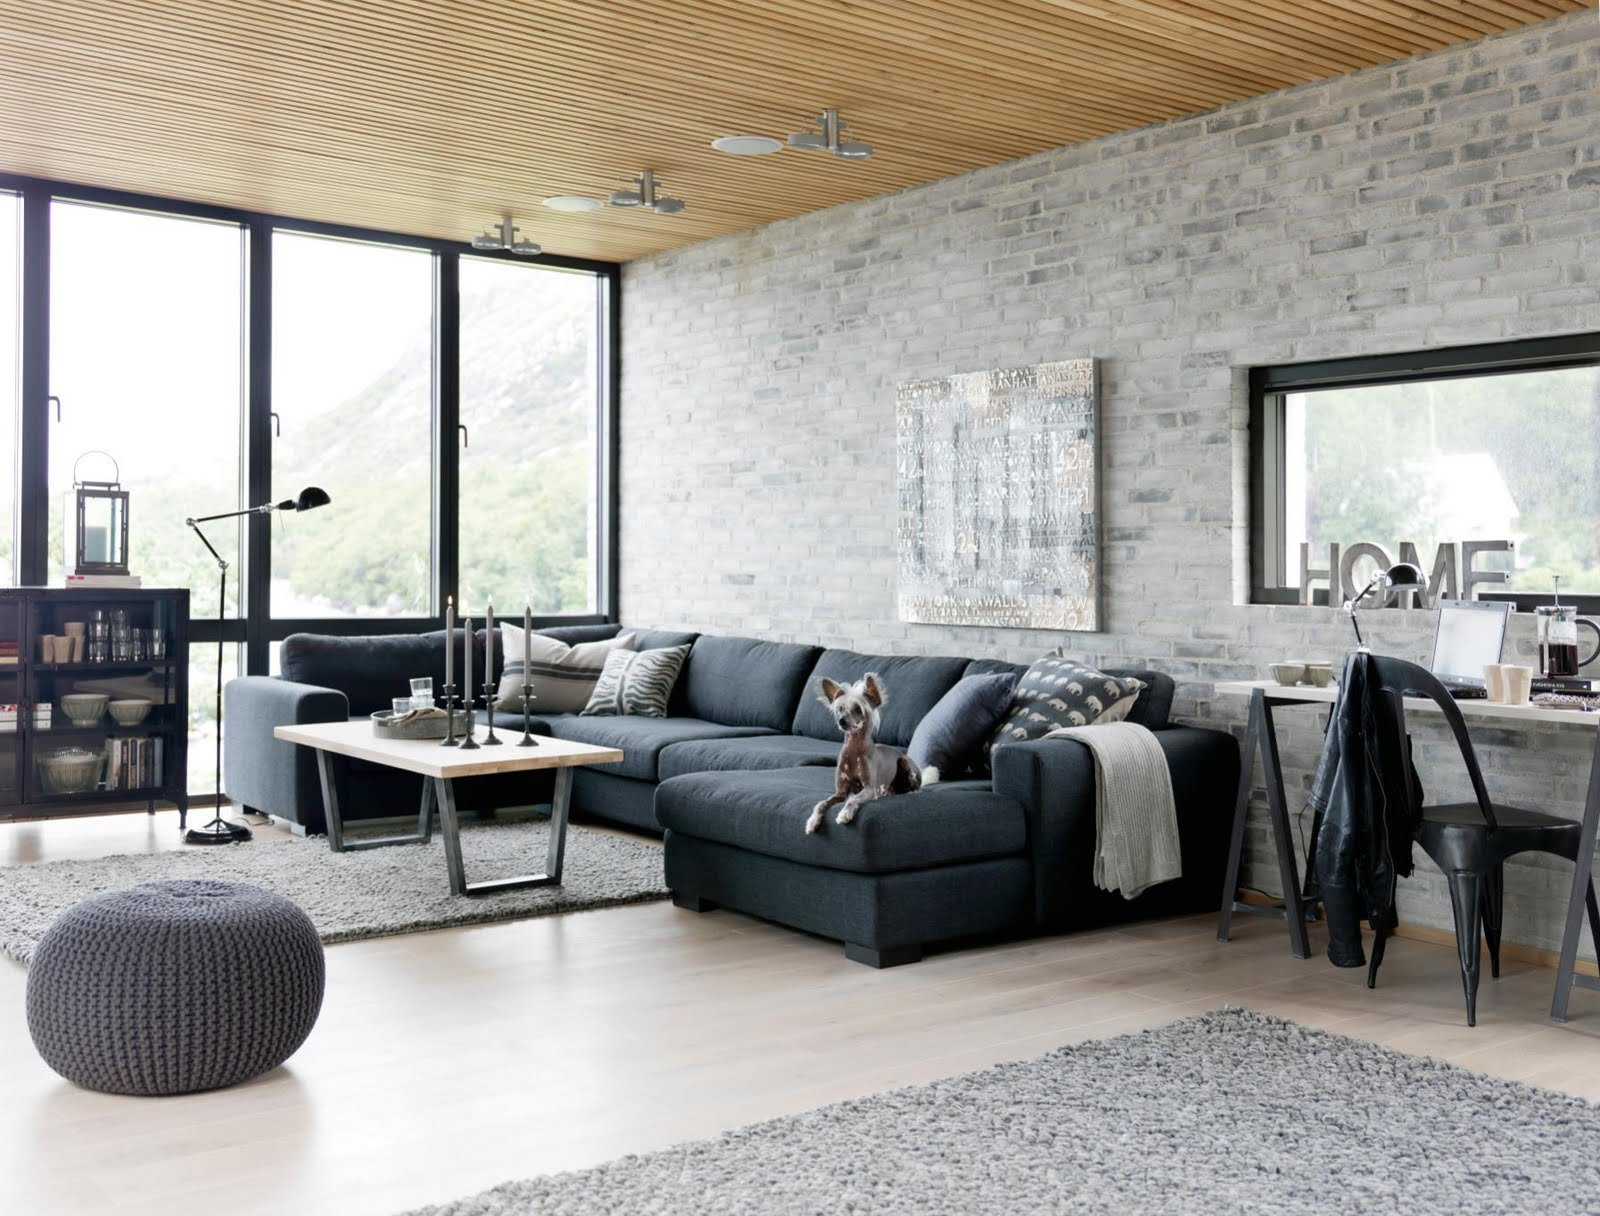 Industrial interior design living room